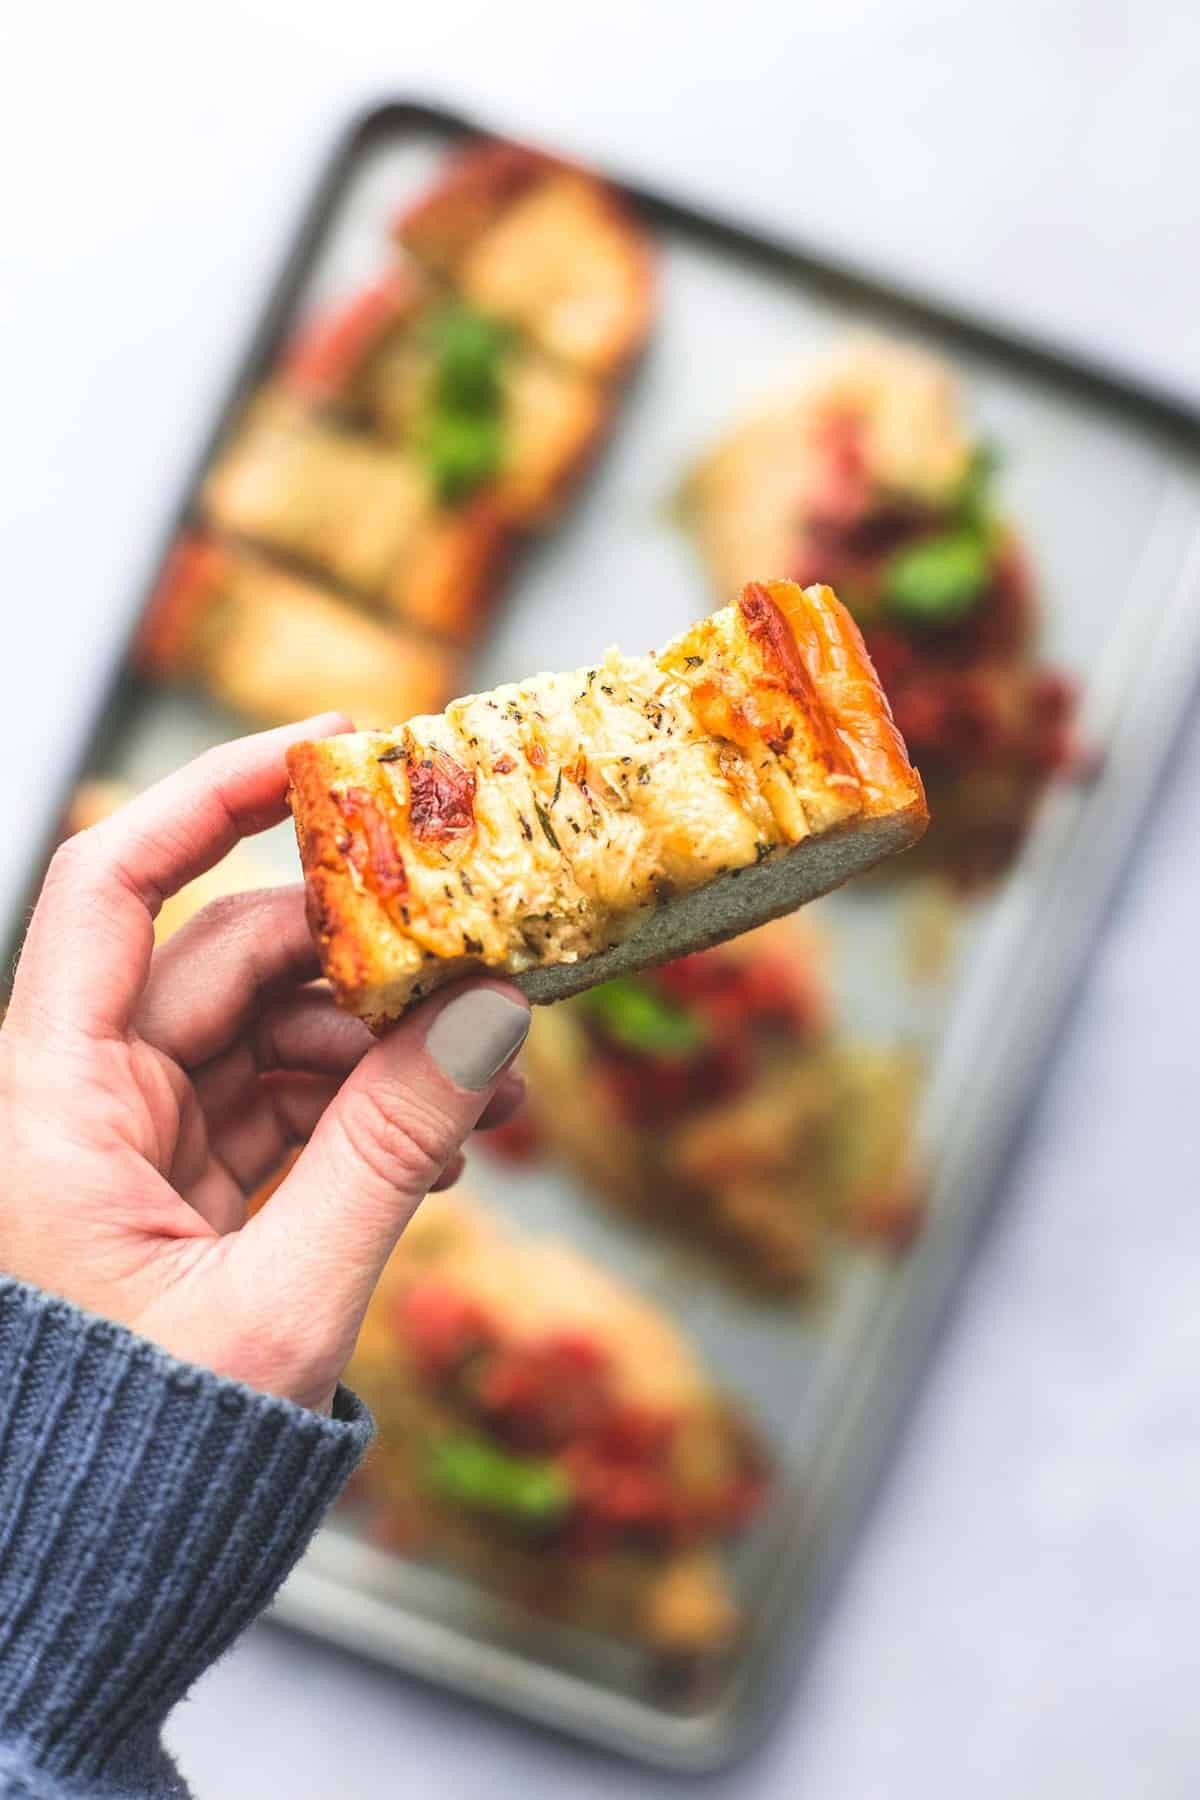 Sheet Pan Bruschetta Chicken and Cheesy Garlic Bread easy one pan dinner recipe | lecremedelacrumb.com